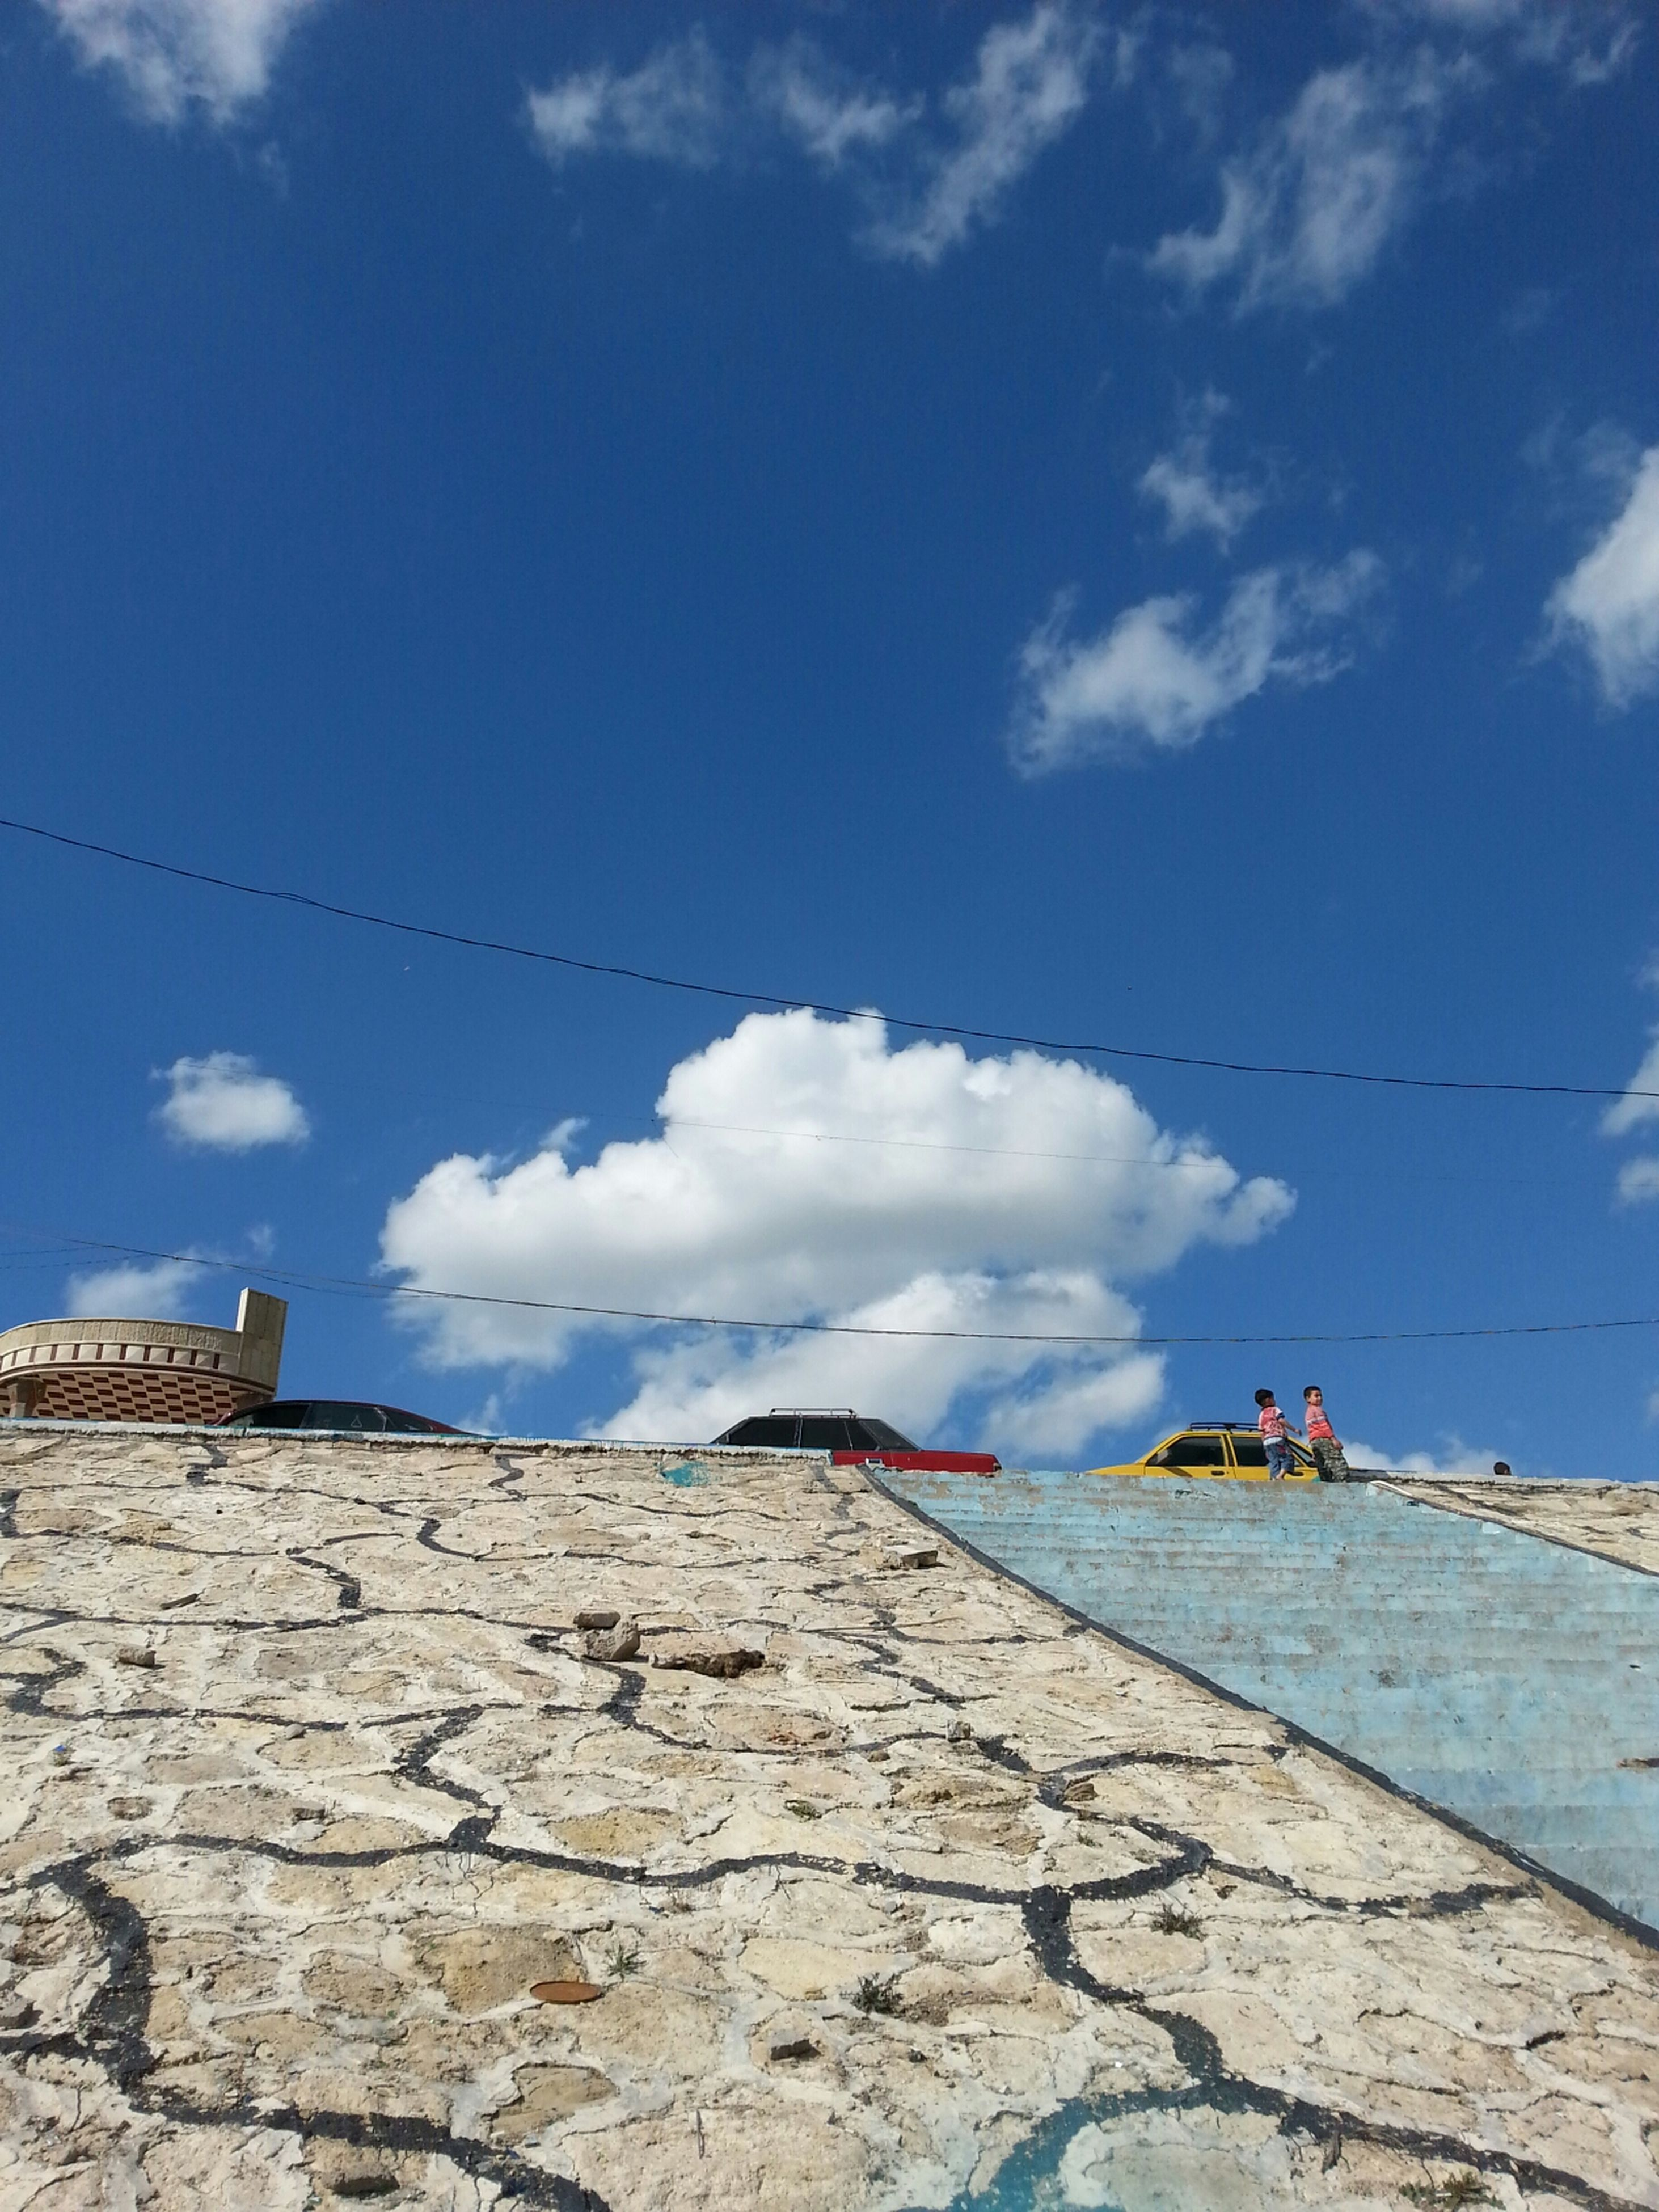 sky, low angle view, blue, built structure, cloud - sky, architecture, building exterior, cloud, day, outdoors, sunlight, wall - building feature, bird, roof, no people, nature, cloudy, house, stone wall, wall